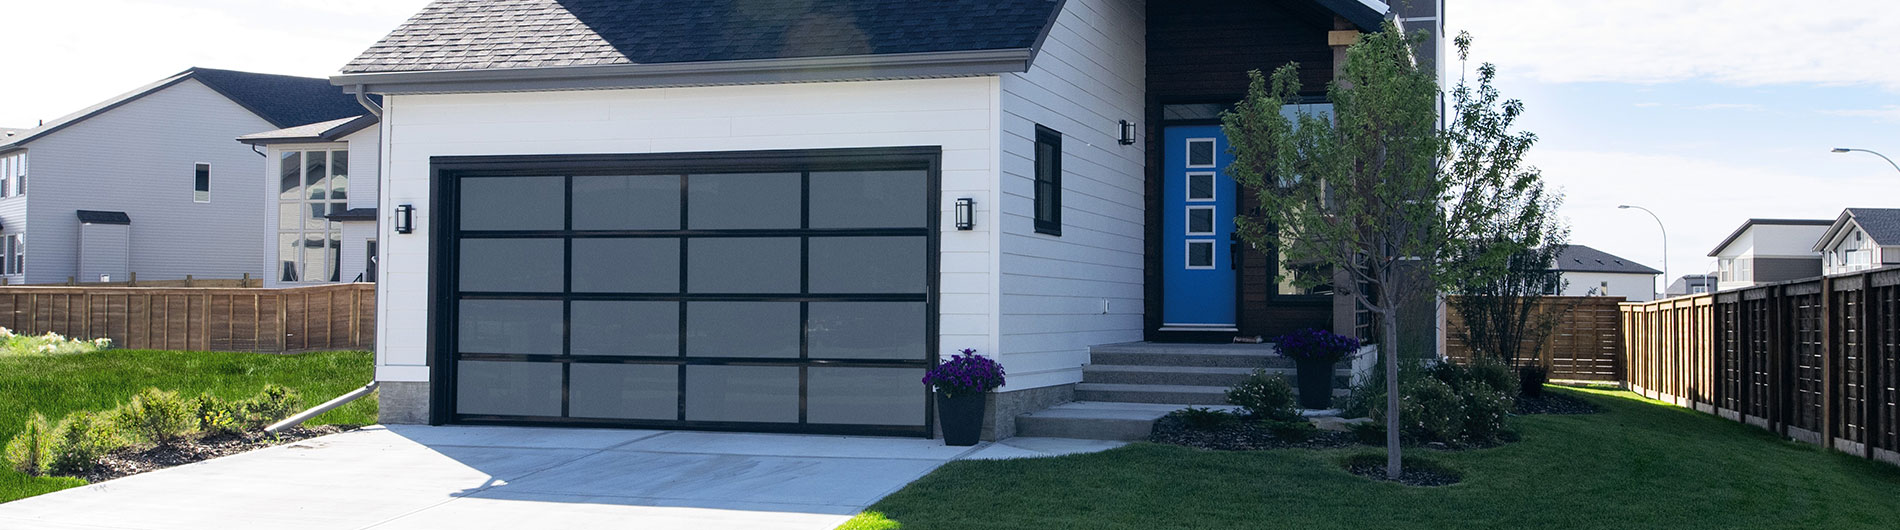 View Larger Image & Aluminum Glass Garage Doors 8850 From Precision Door - Precision ...